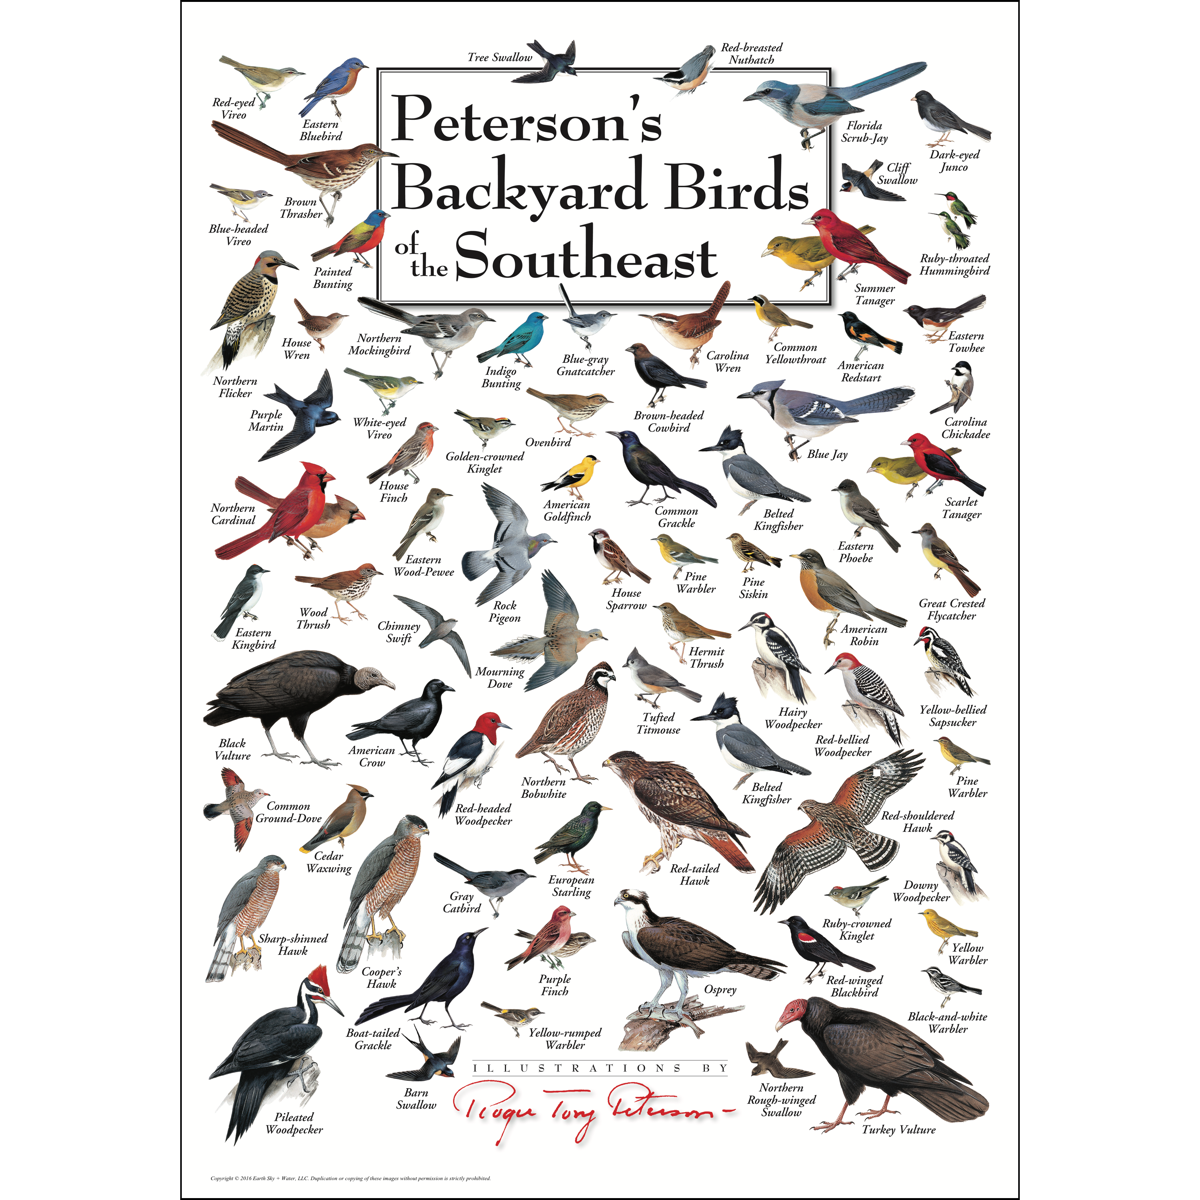 Peterson's Backyard Birds of the Southeast - Poster ...